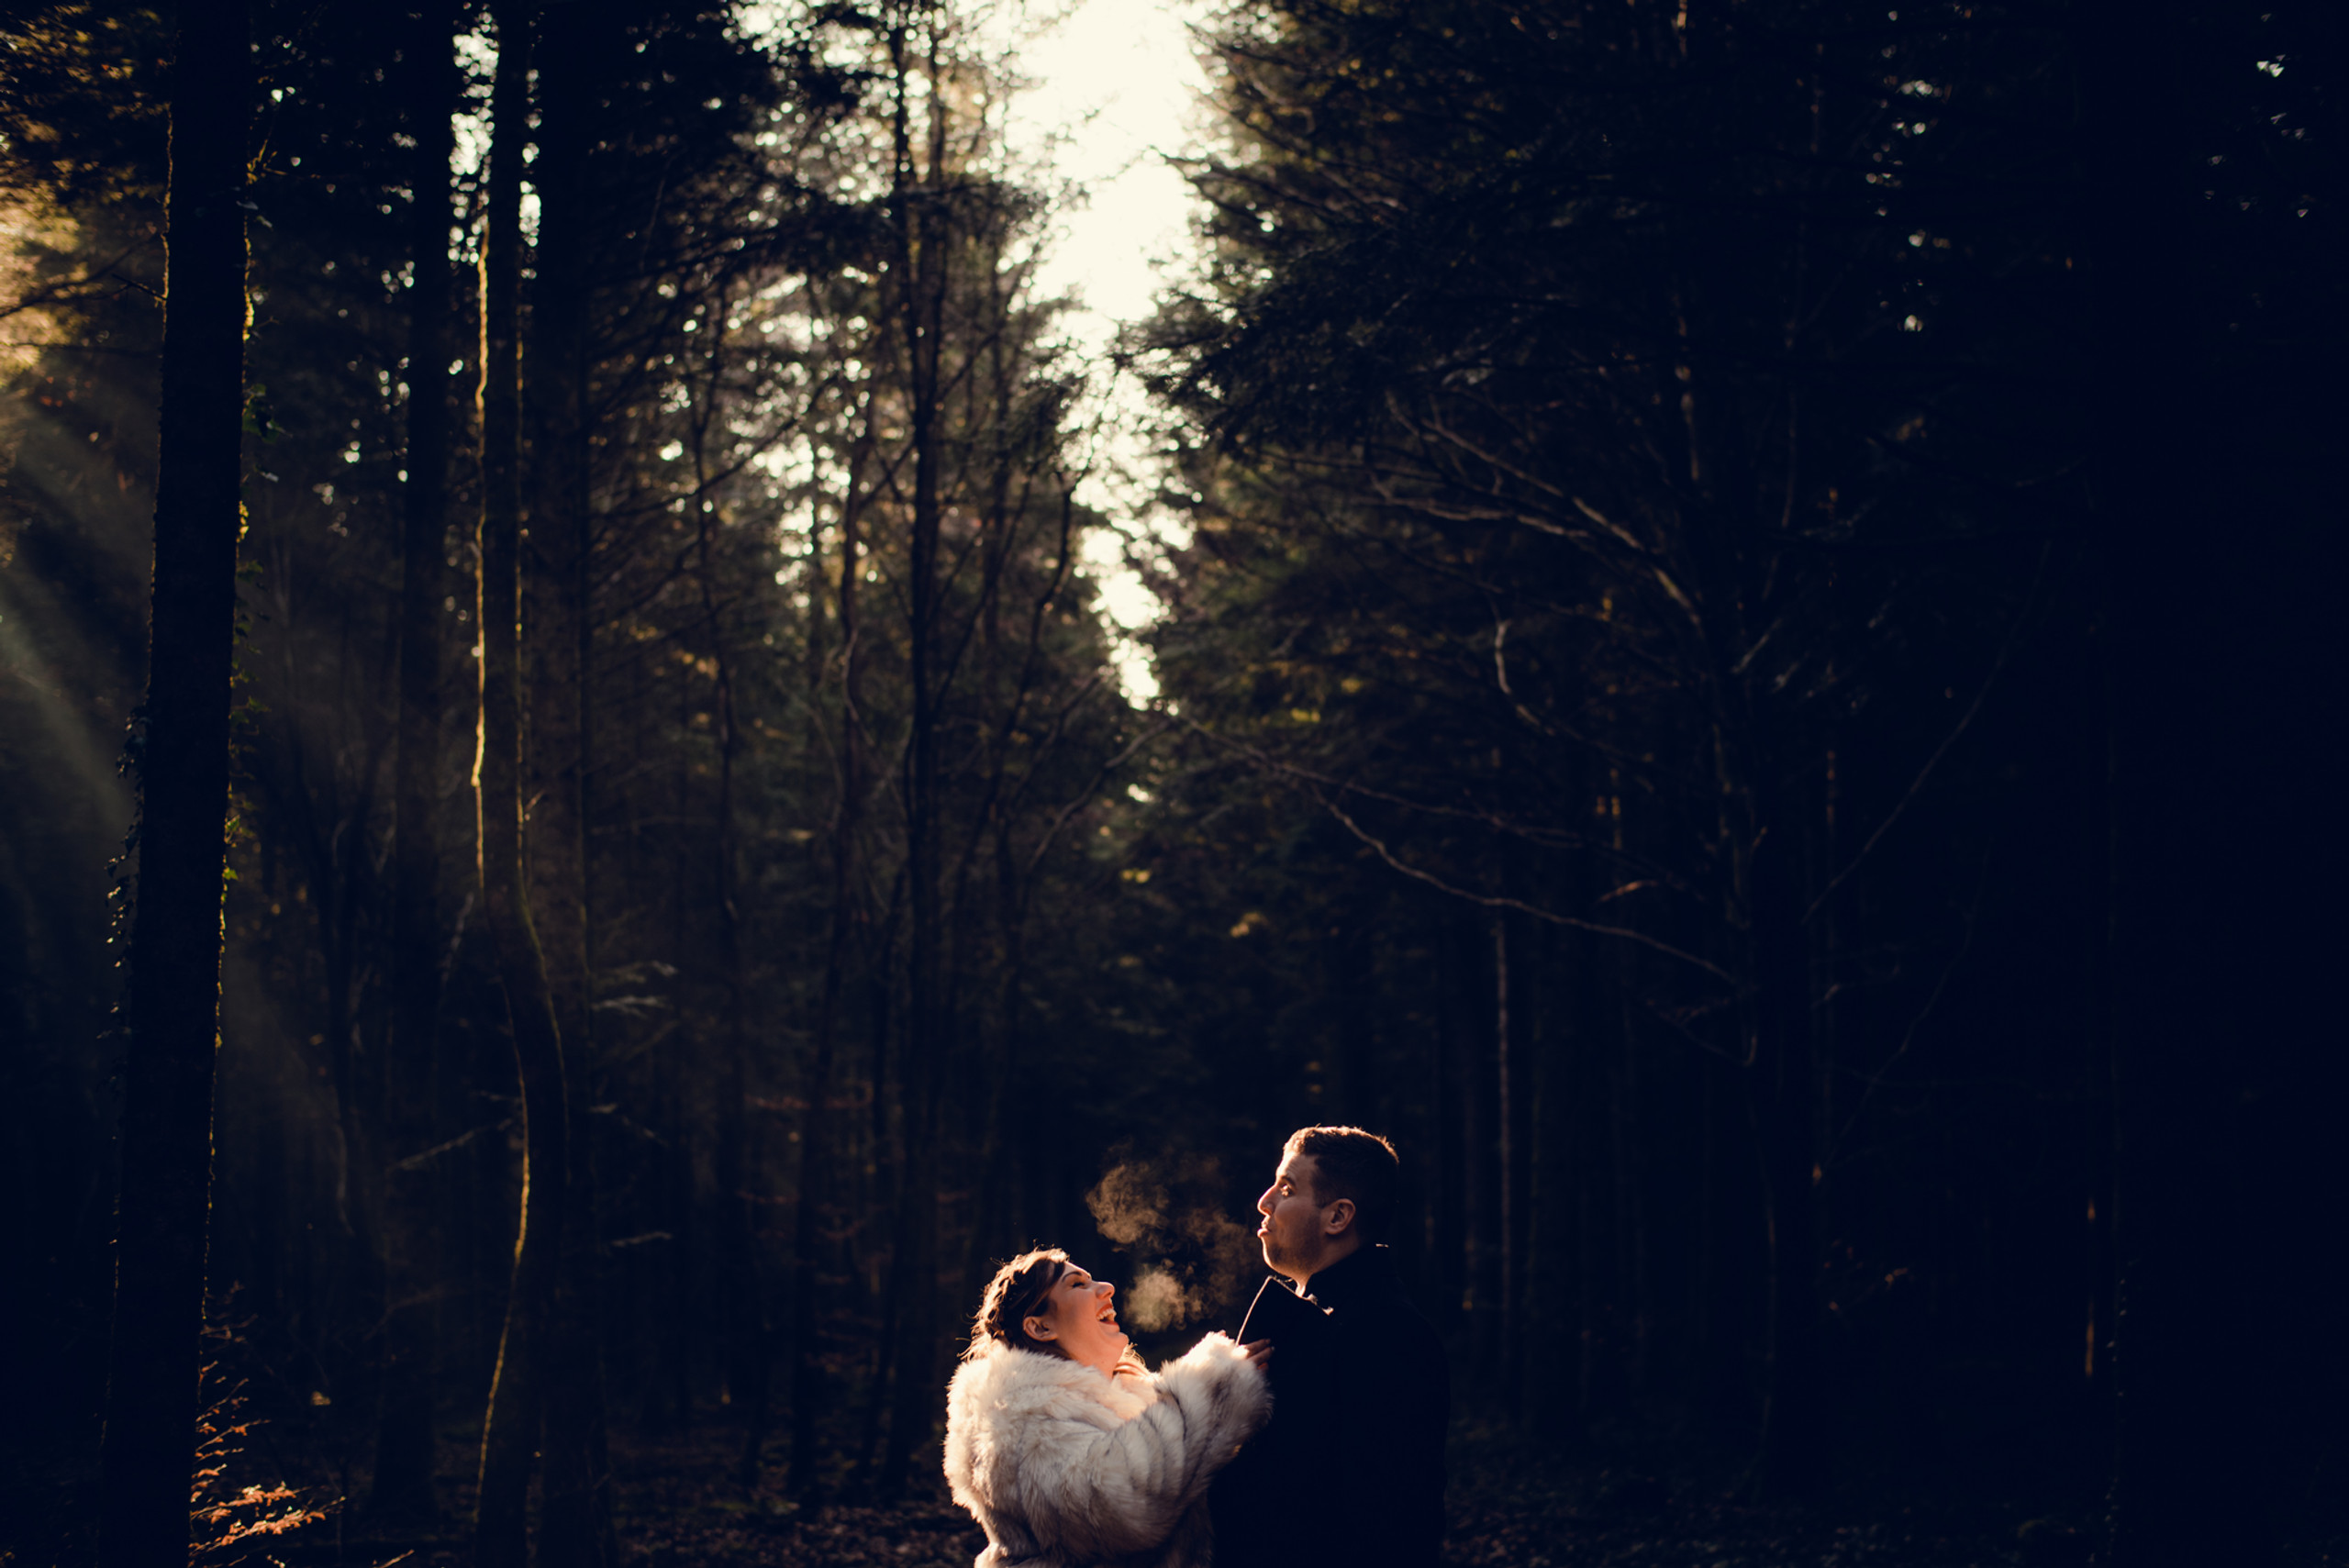 Mariage automne hivers, reporter son mariage cause cov19